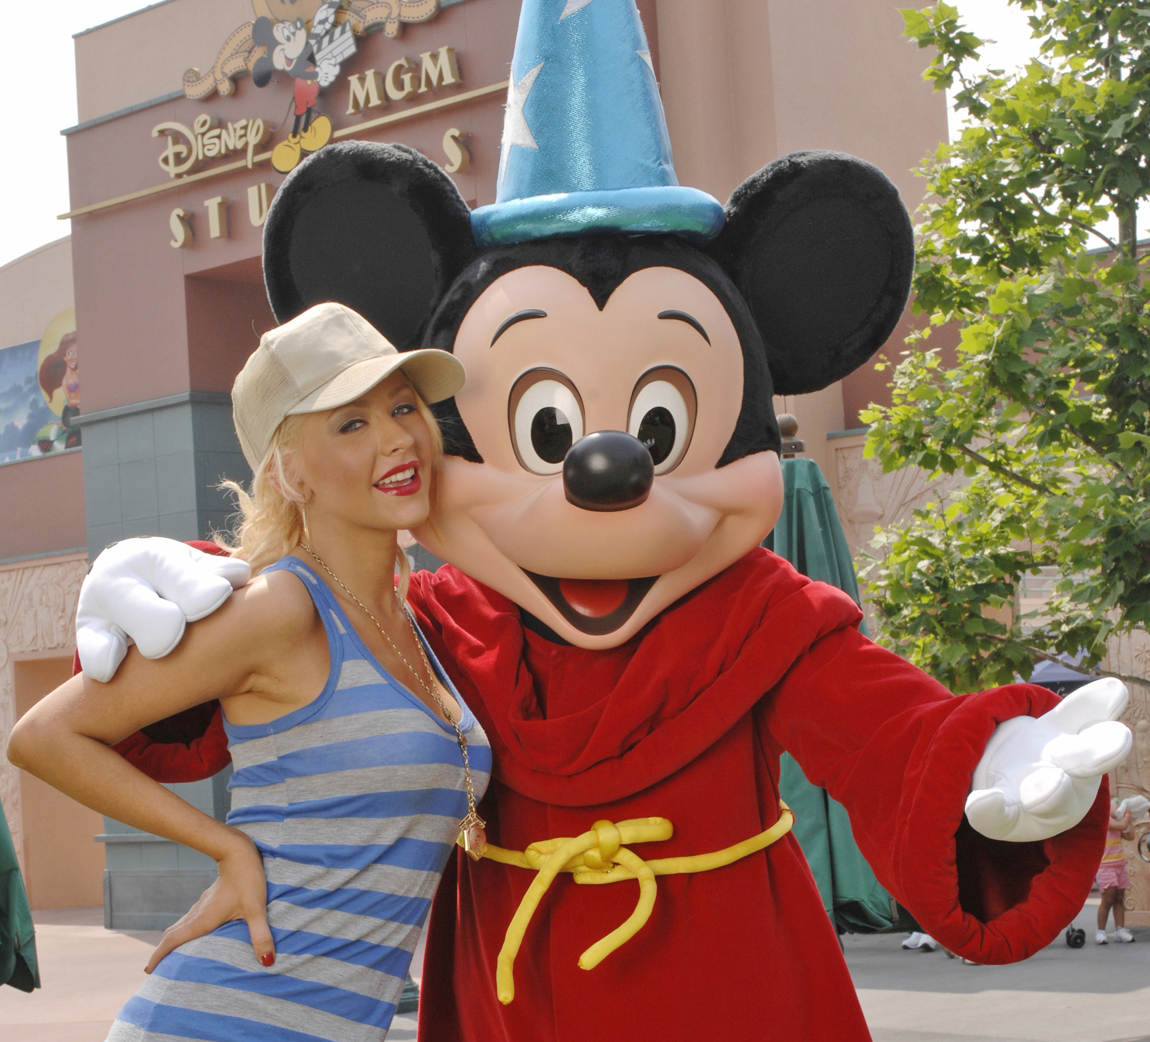 Christina Aguilera poses with Mickey Mouse at the Disney MGM Studios